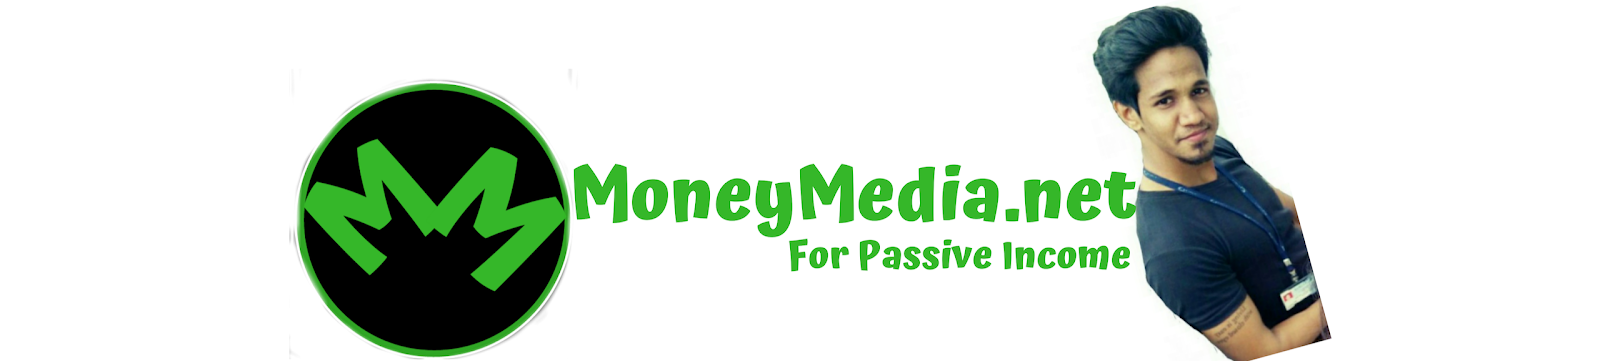 MoneyMedia.net » Helping you to generate passive income